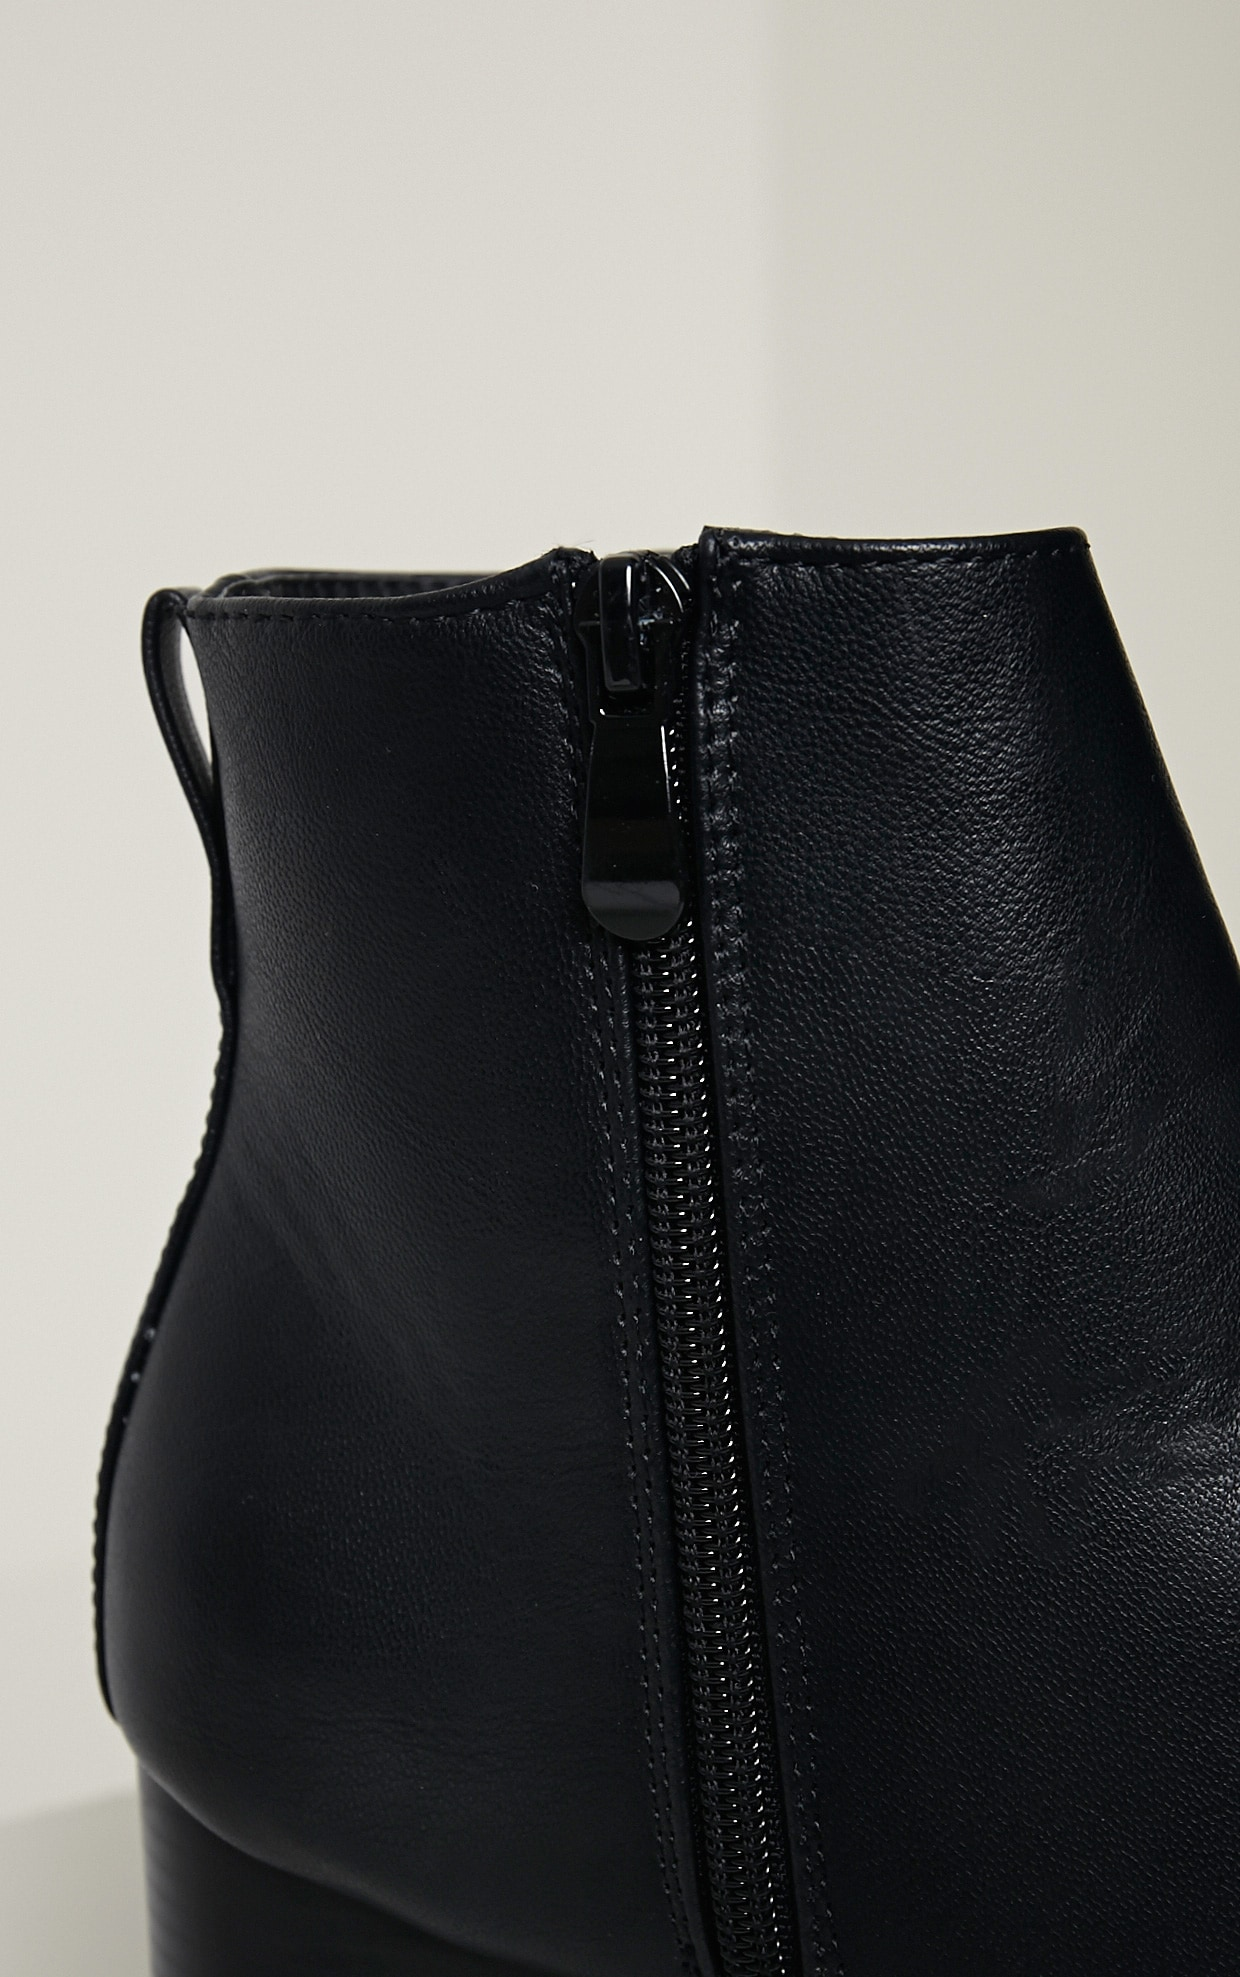 Elana Black Faux Leather Heeled Ankle Boots 7